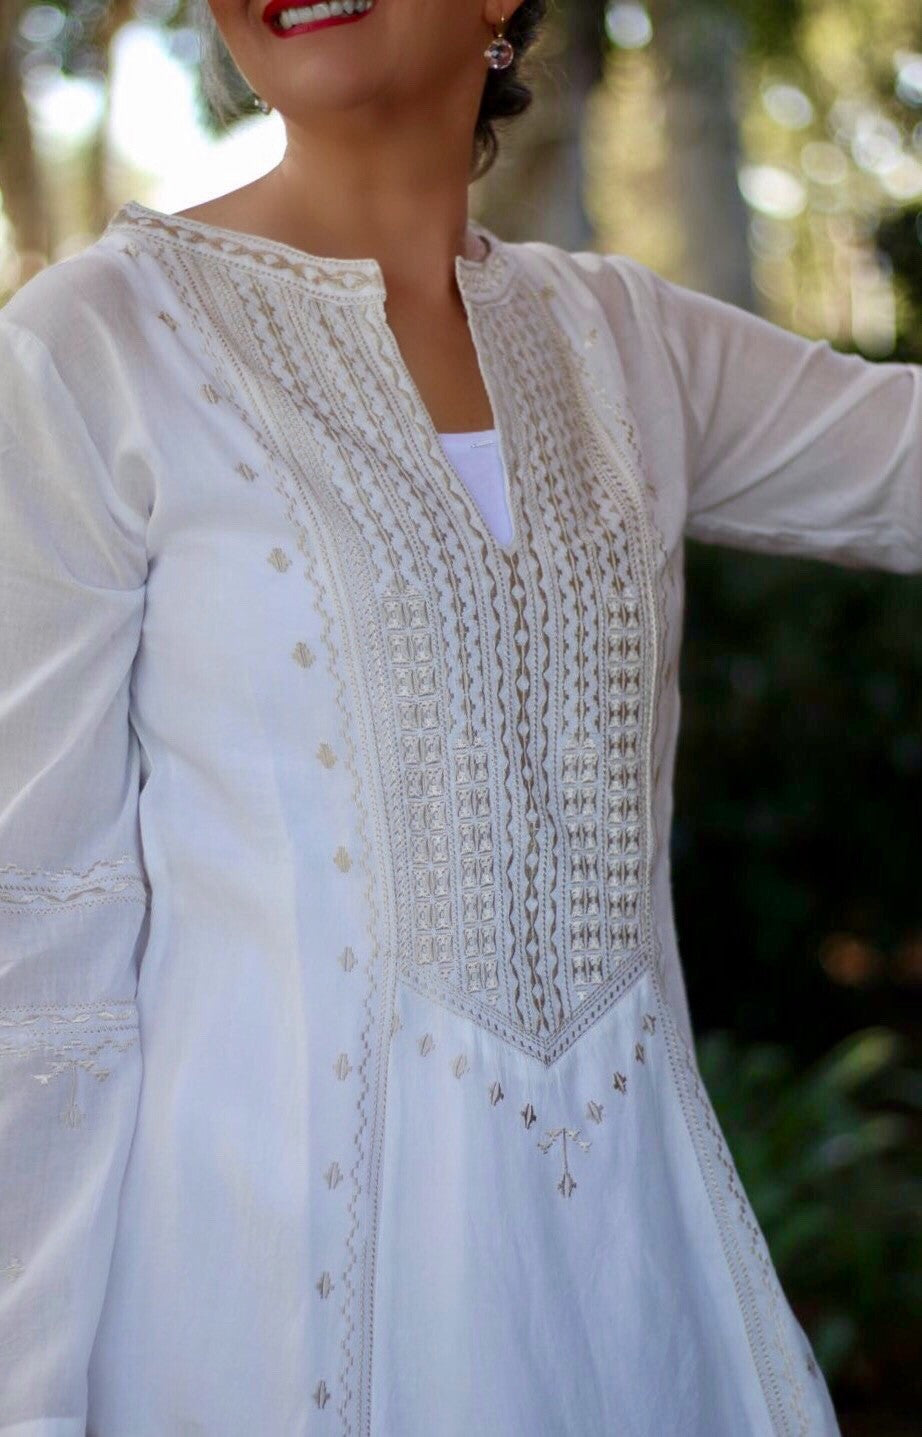 Tunic Long Sleeve Needlepoint in White & Tan